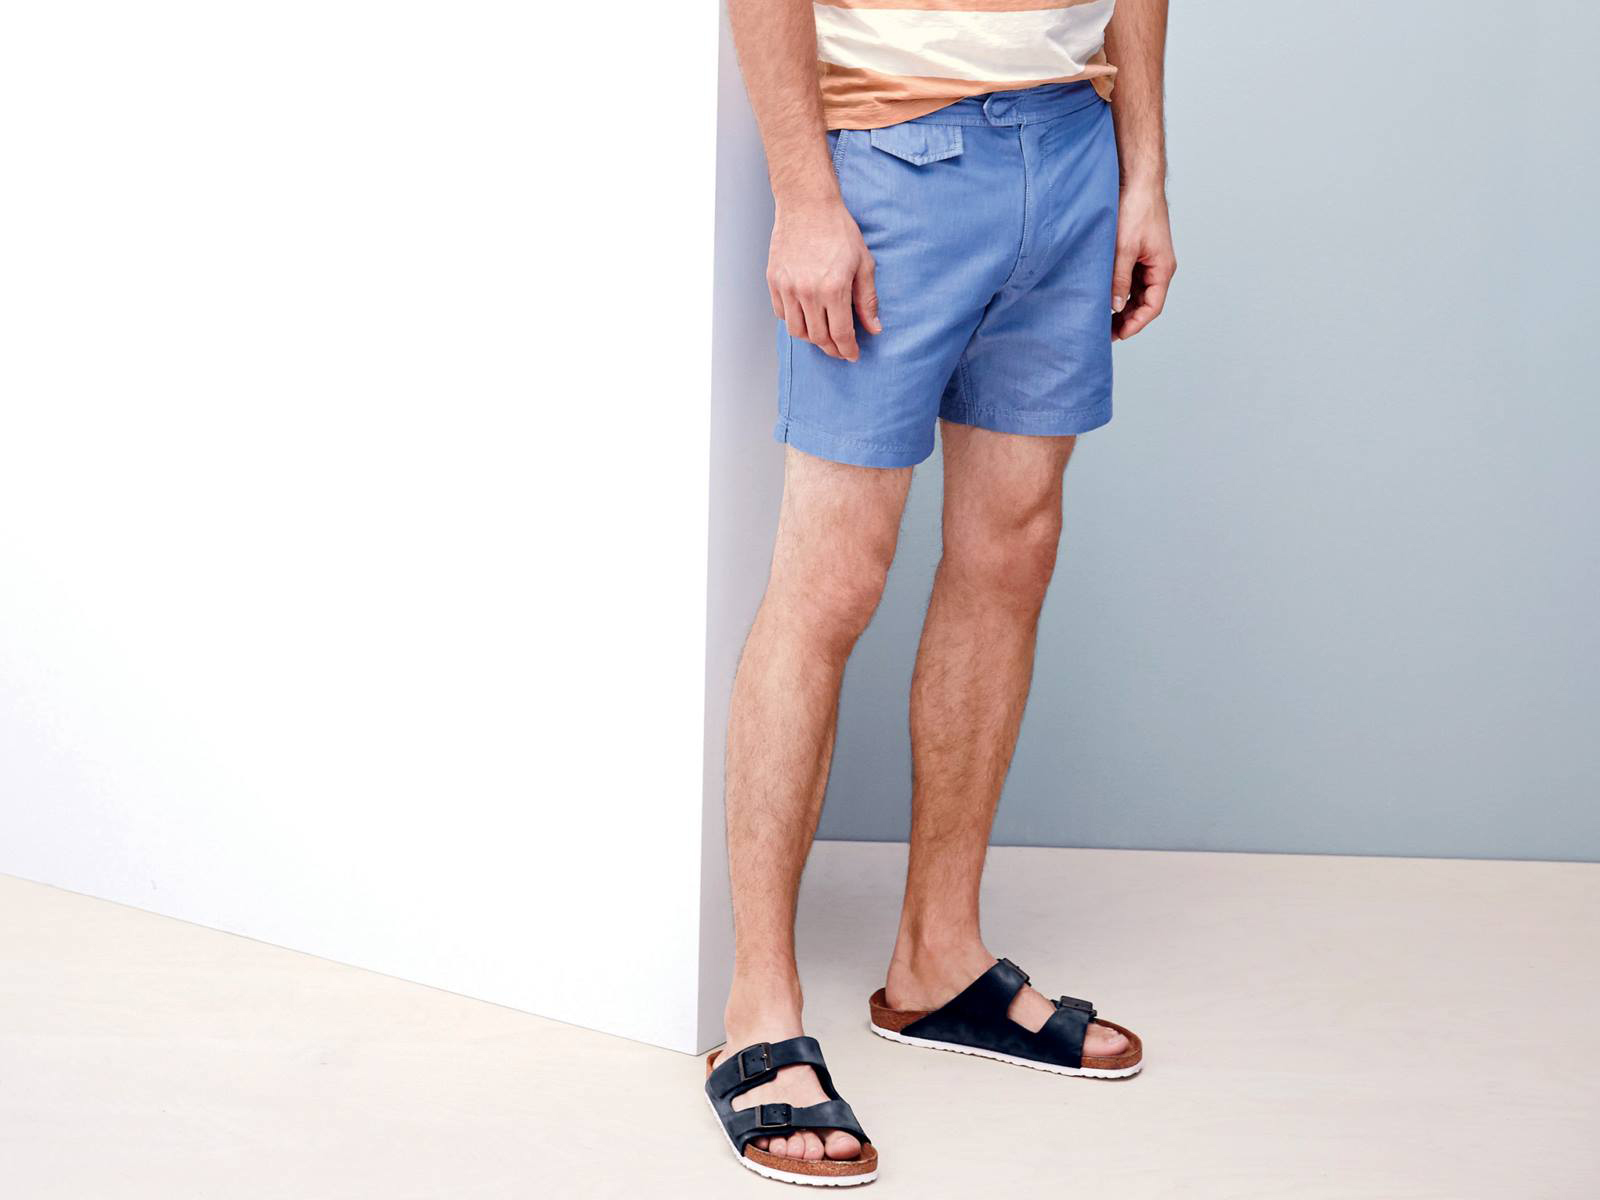 mens short shorts hereu0027s proof that men are finally embracing short-shorts - business insider SDTDPLH